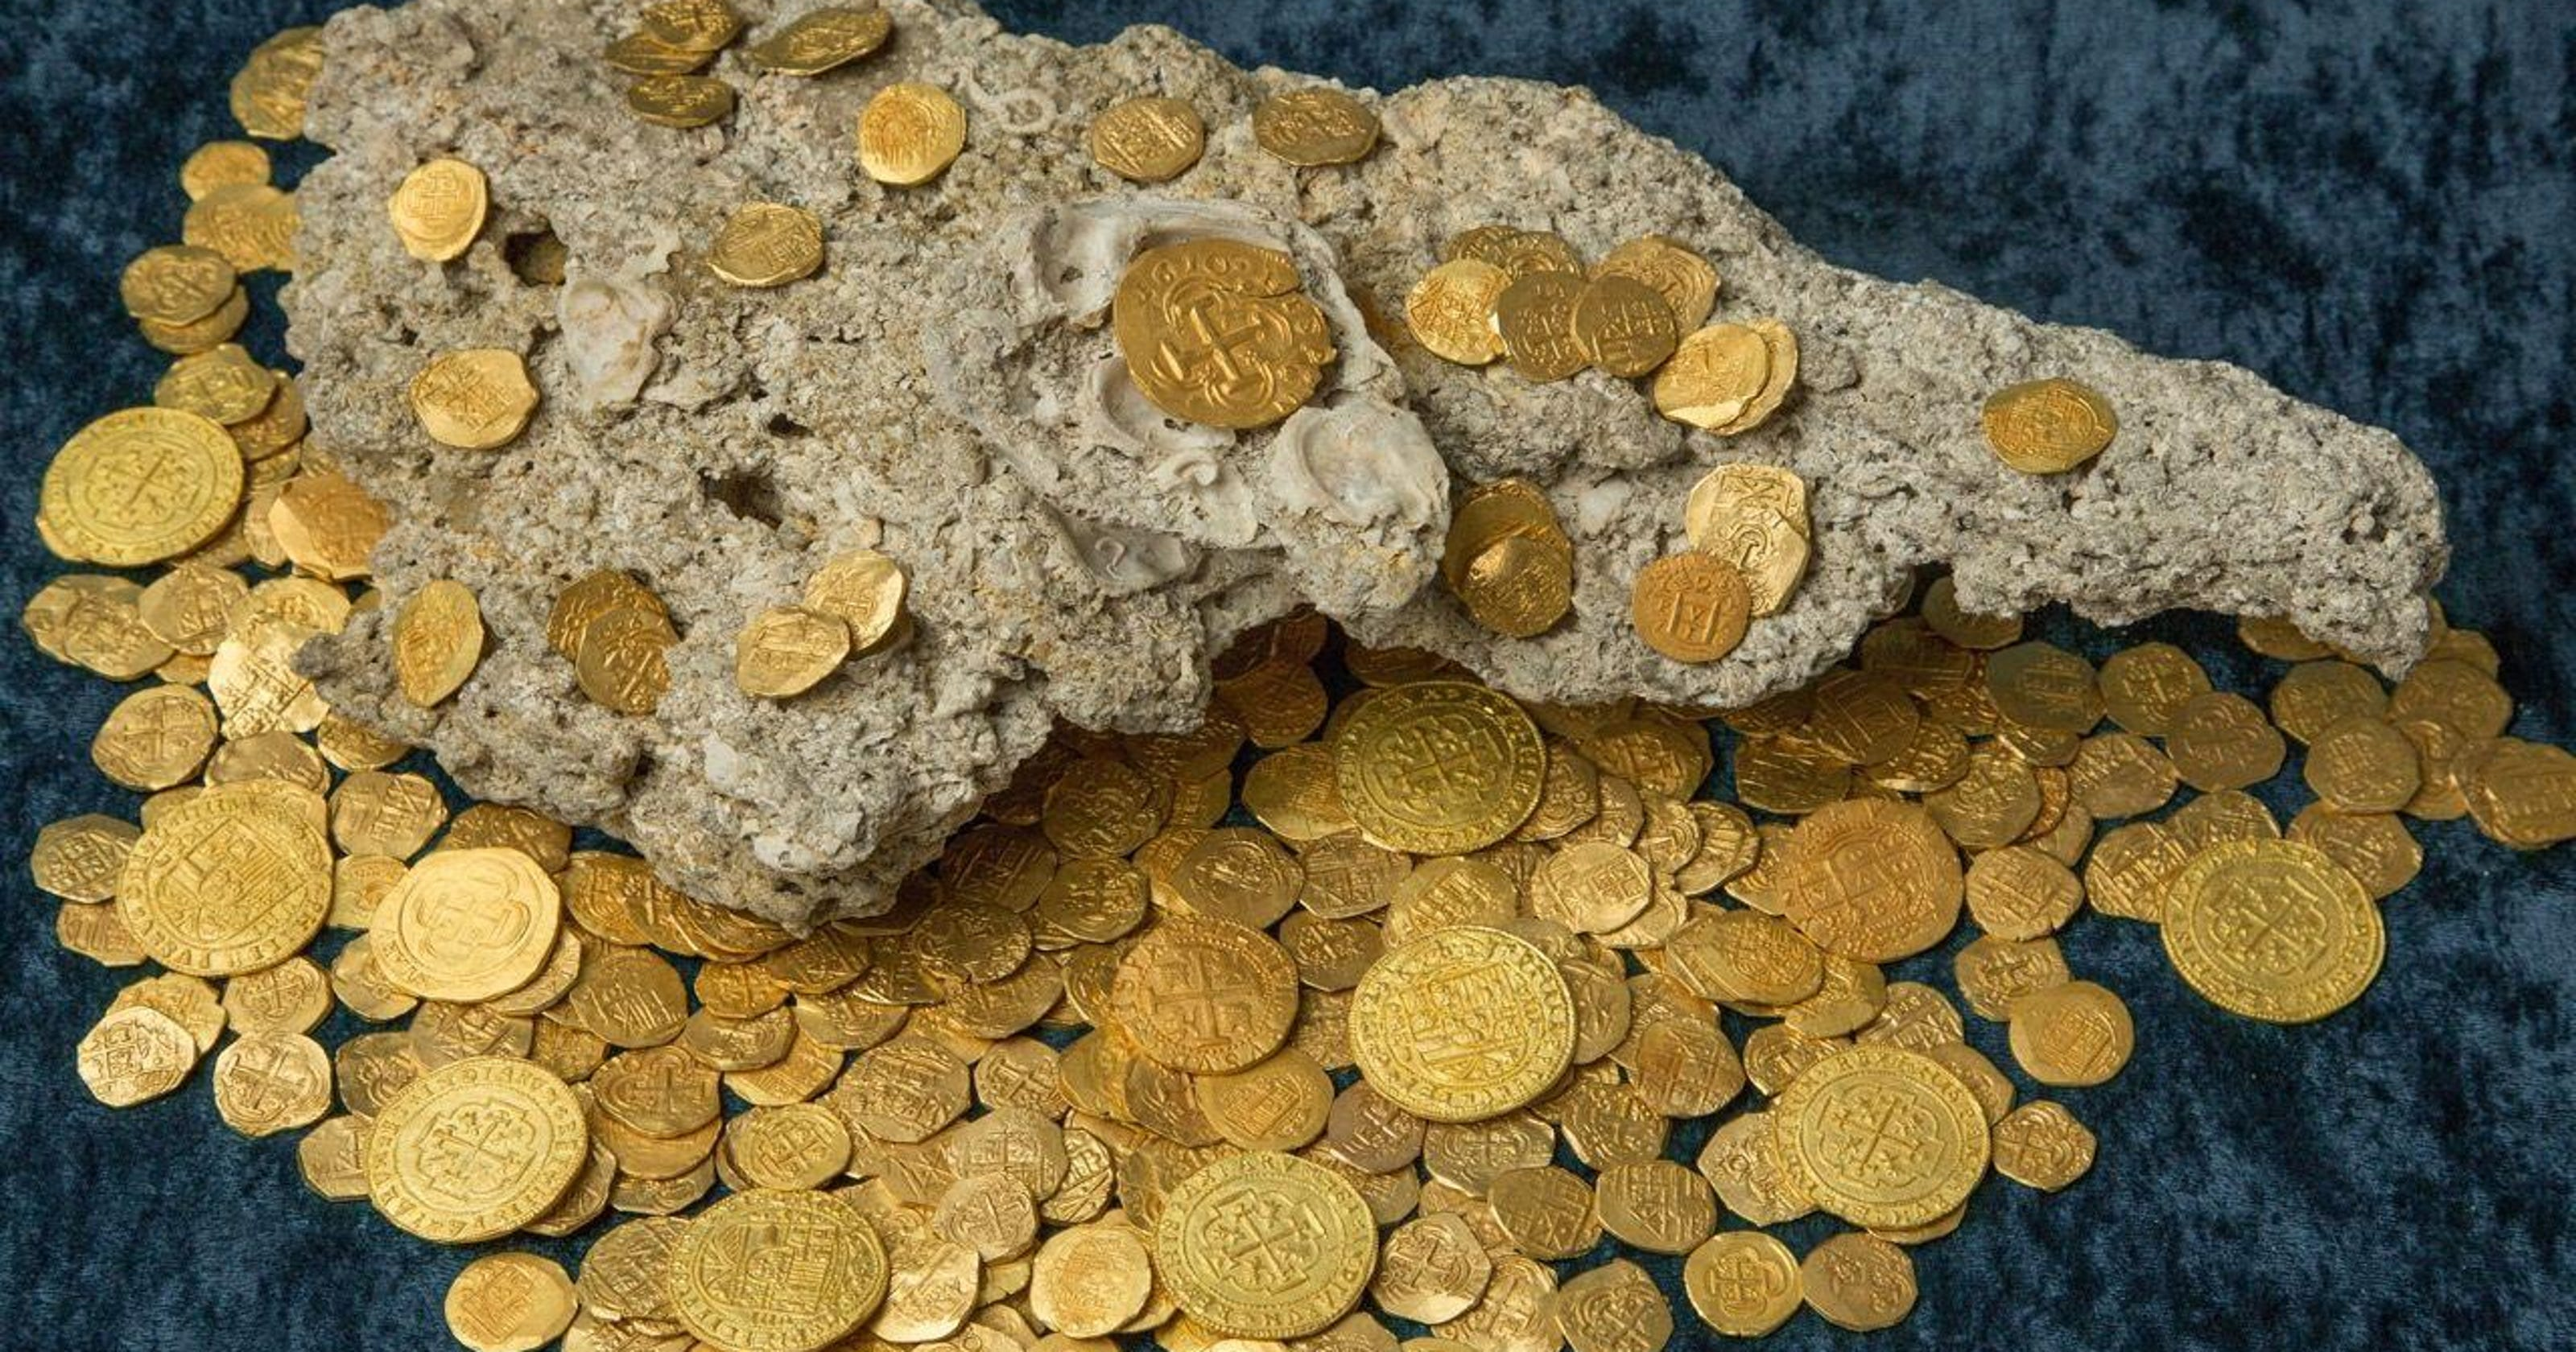 Florida Divers Find 300 Year Old Gold Coins Worth 45m Fun Metal Detector To Findcoins At The Beach